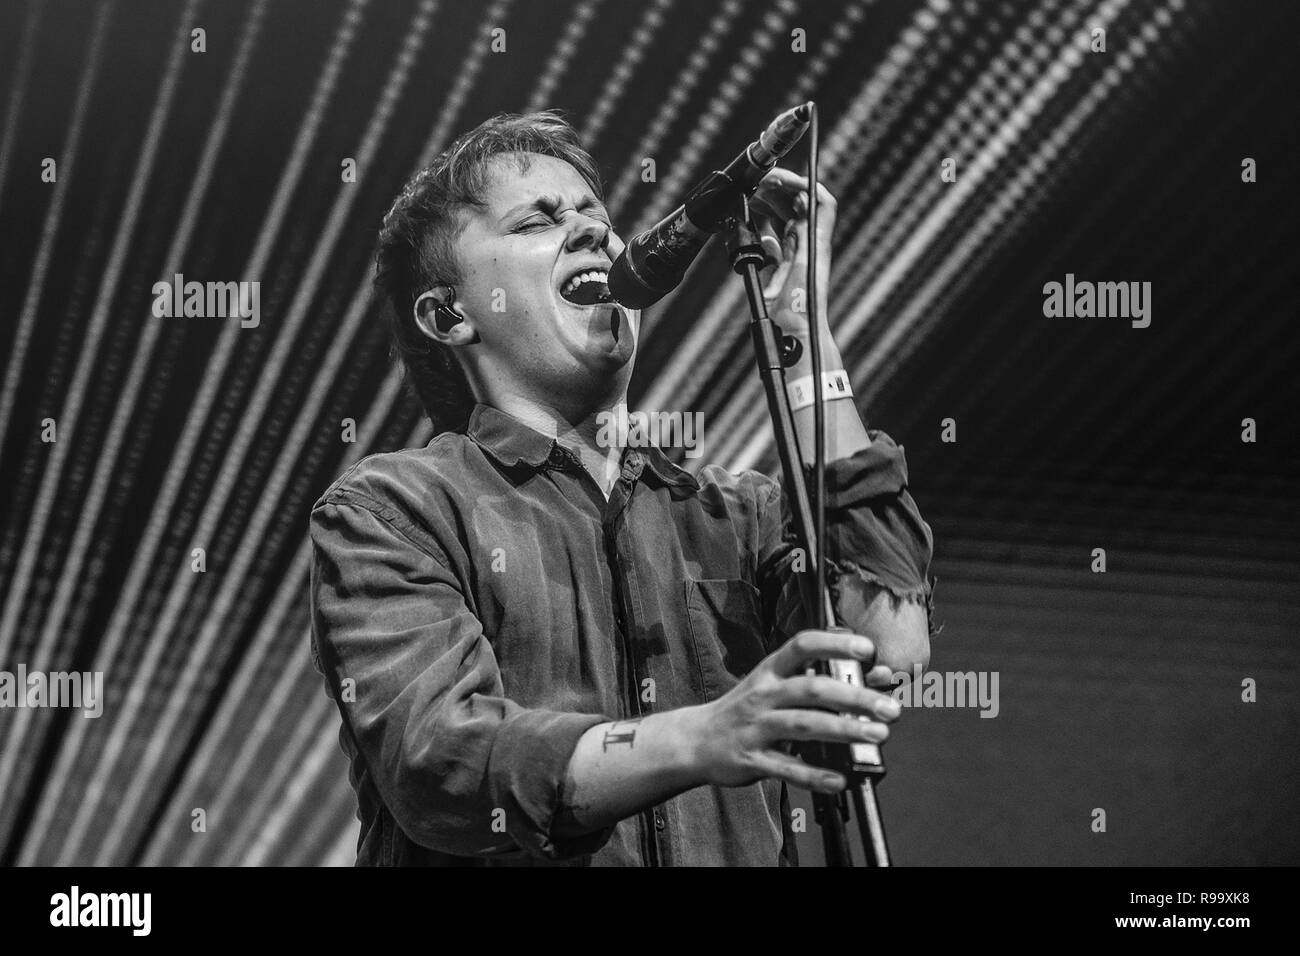 Artists perform at the Roundhouse for Music 4 Mental Health  Featuring: Conor Mason Where: London, United Kingdom When: 18 Nov 2018 Credit: Neil Lupin/WENN Stock Photo